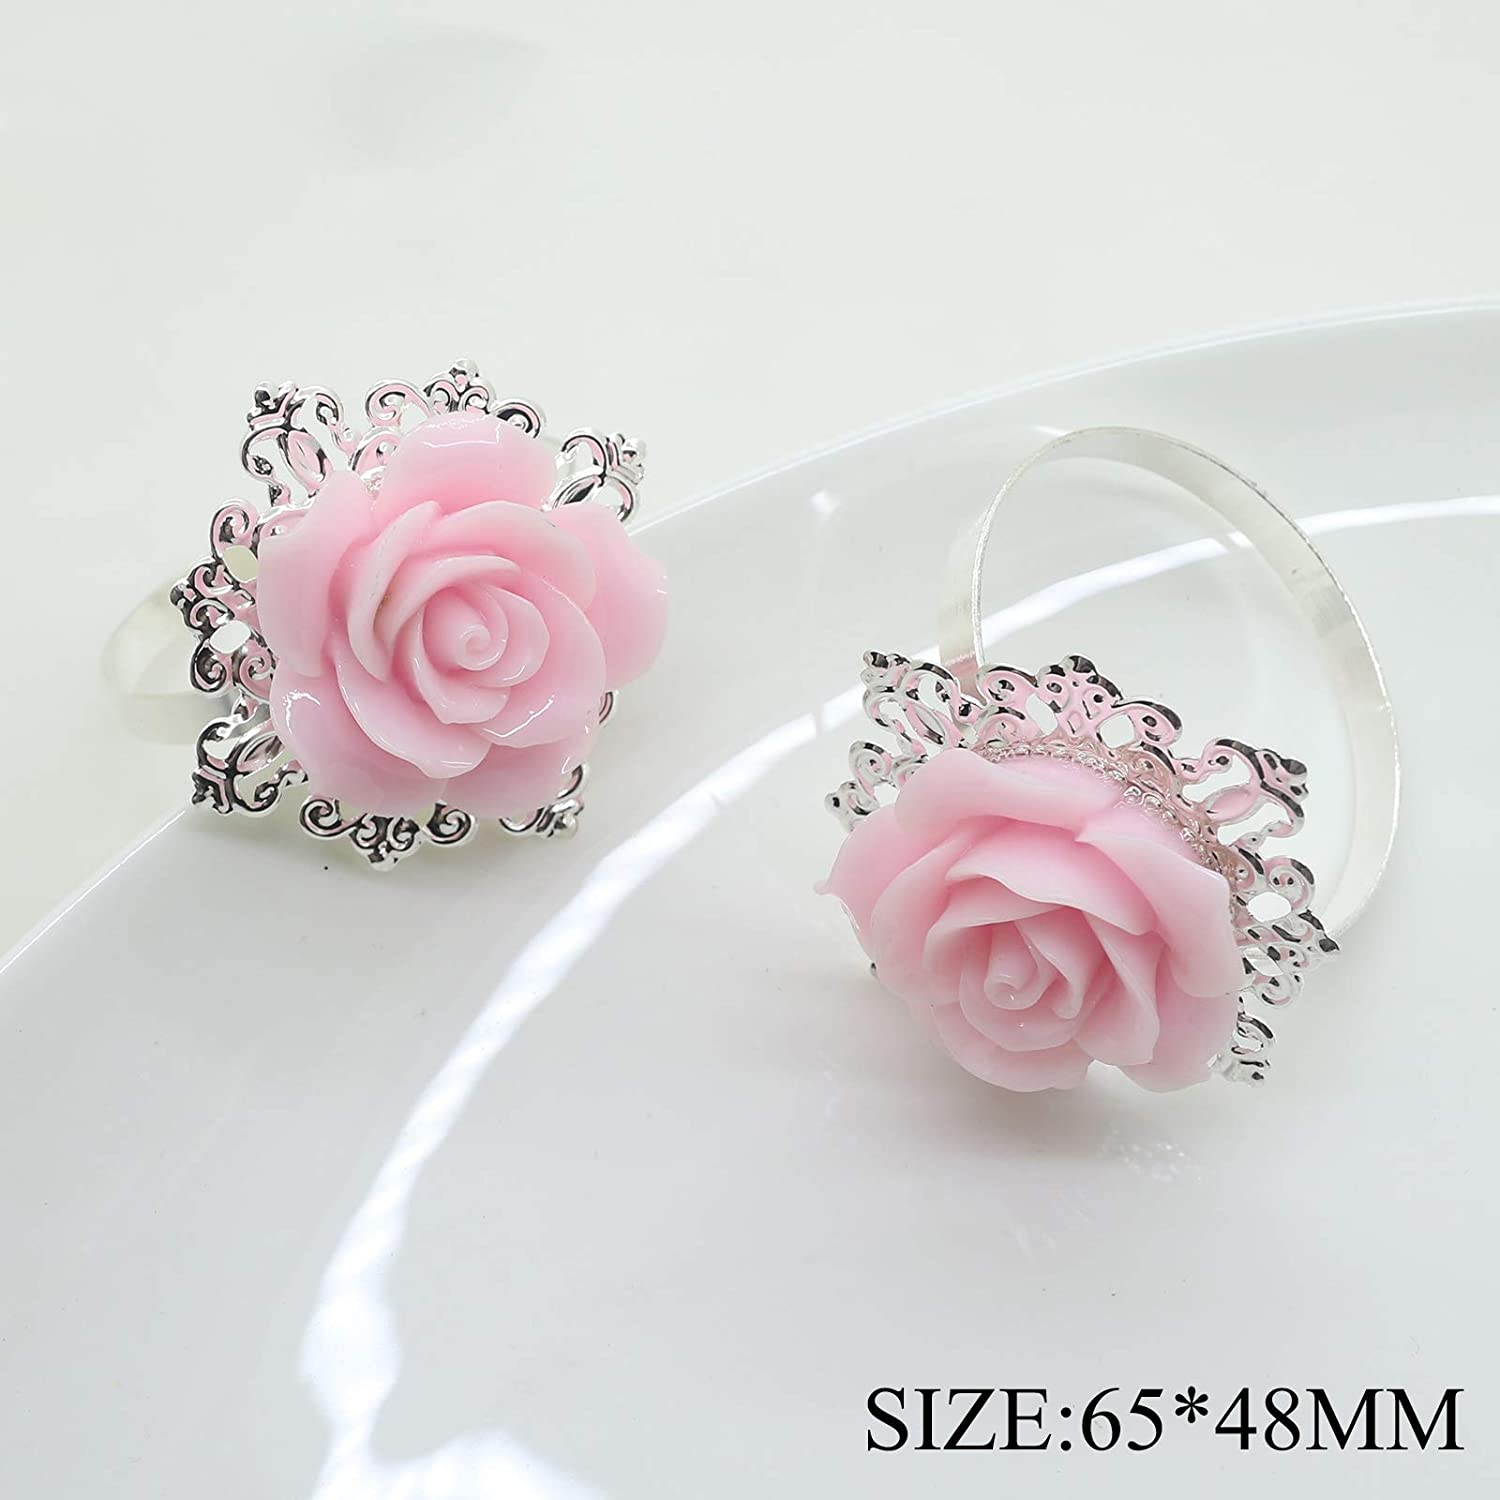 10pcs Pink Rose Decorative Silver Napkin Ring Serviette Holder for Wedding Party Dinner Table Decor Many Color Available For Christmas Table Yomoo